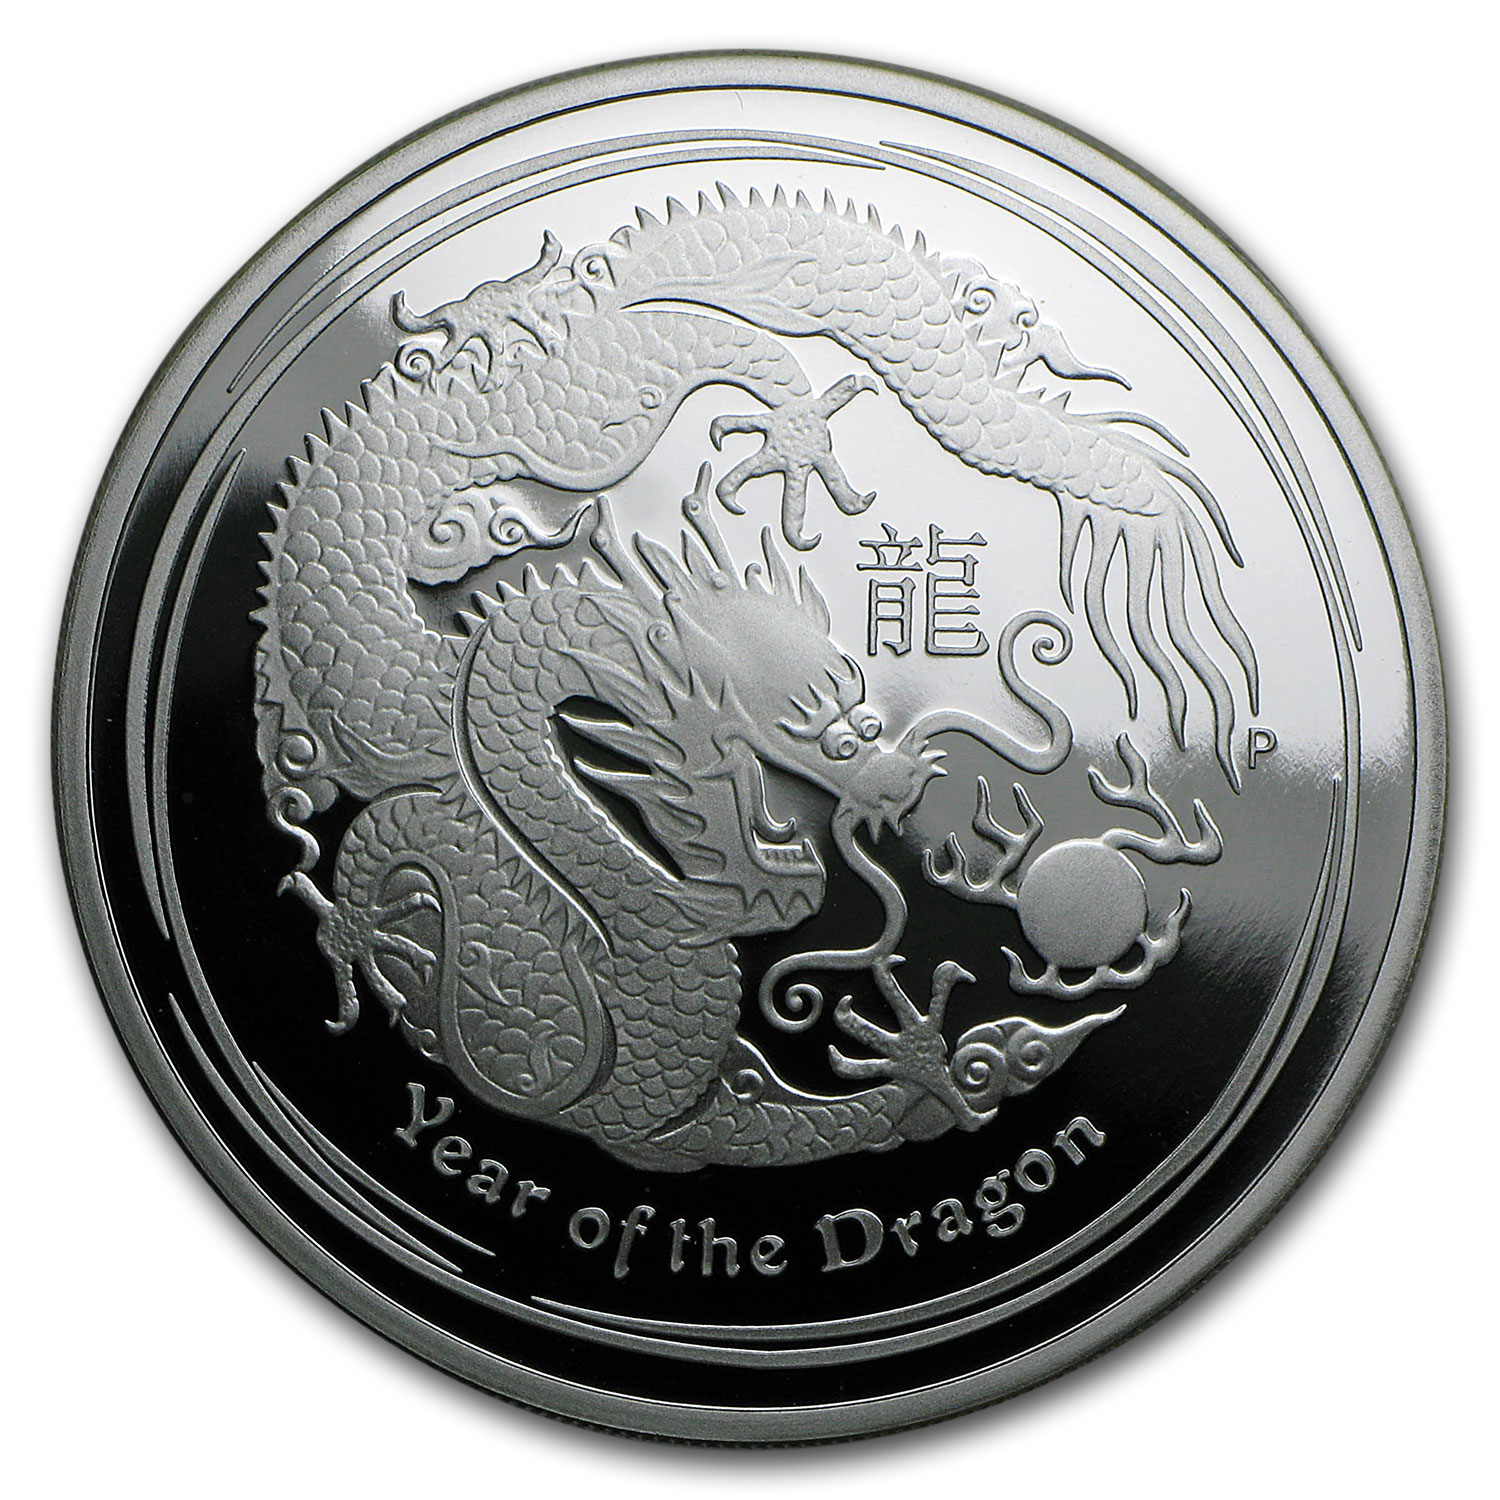 2012 Australia 1 oz Silver Year of the Dragon Proof (Abrasions)